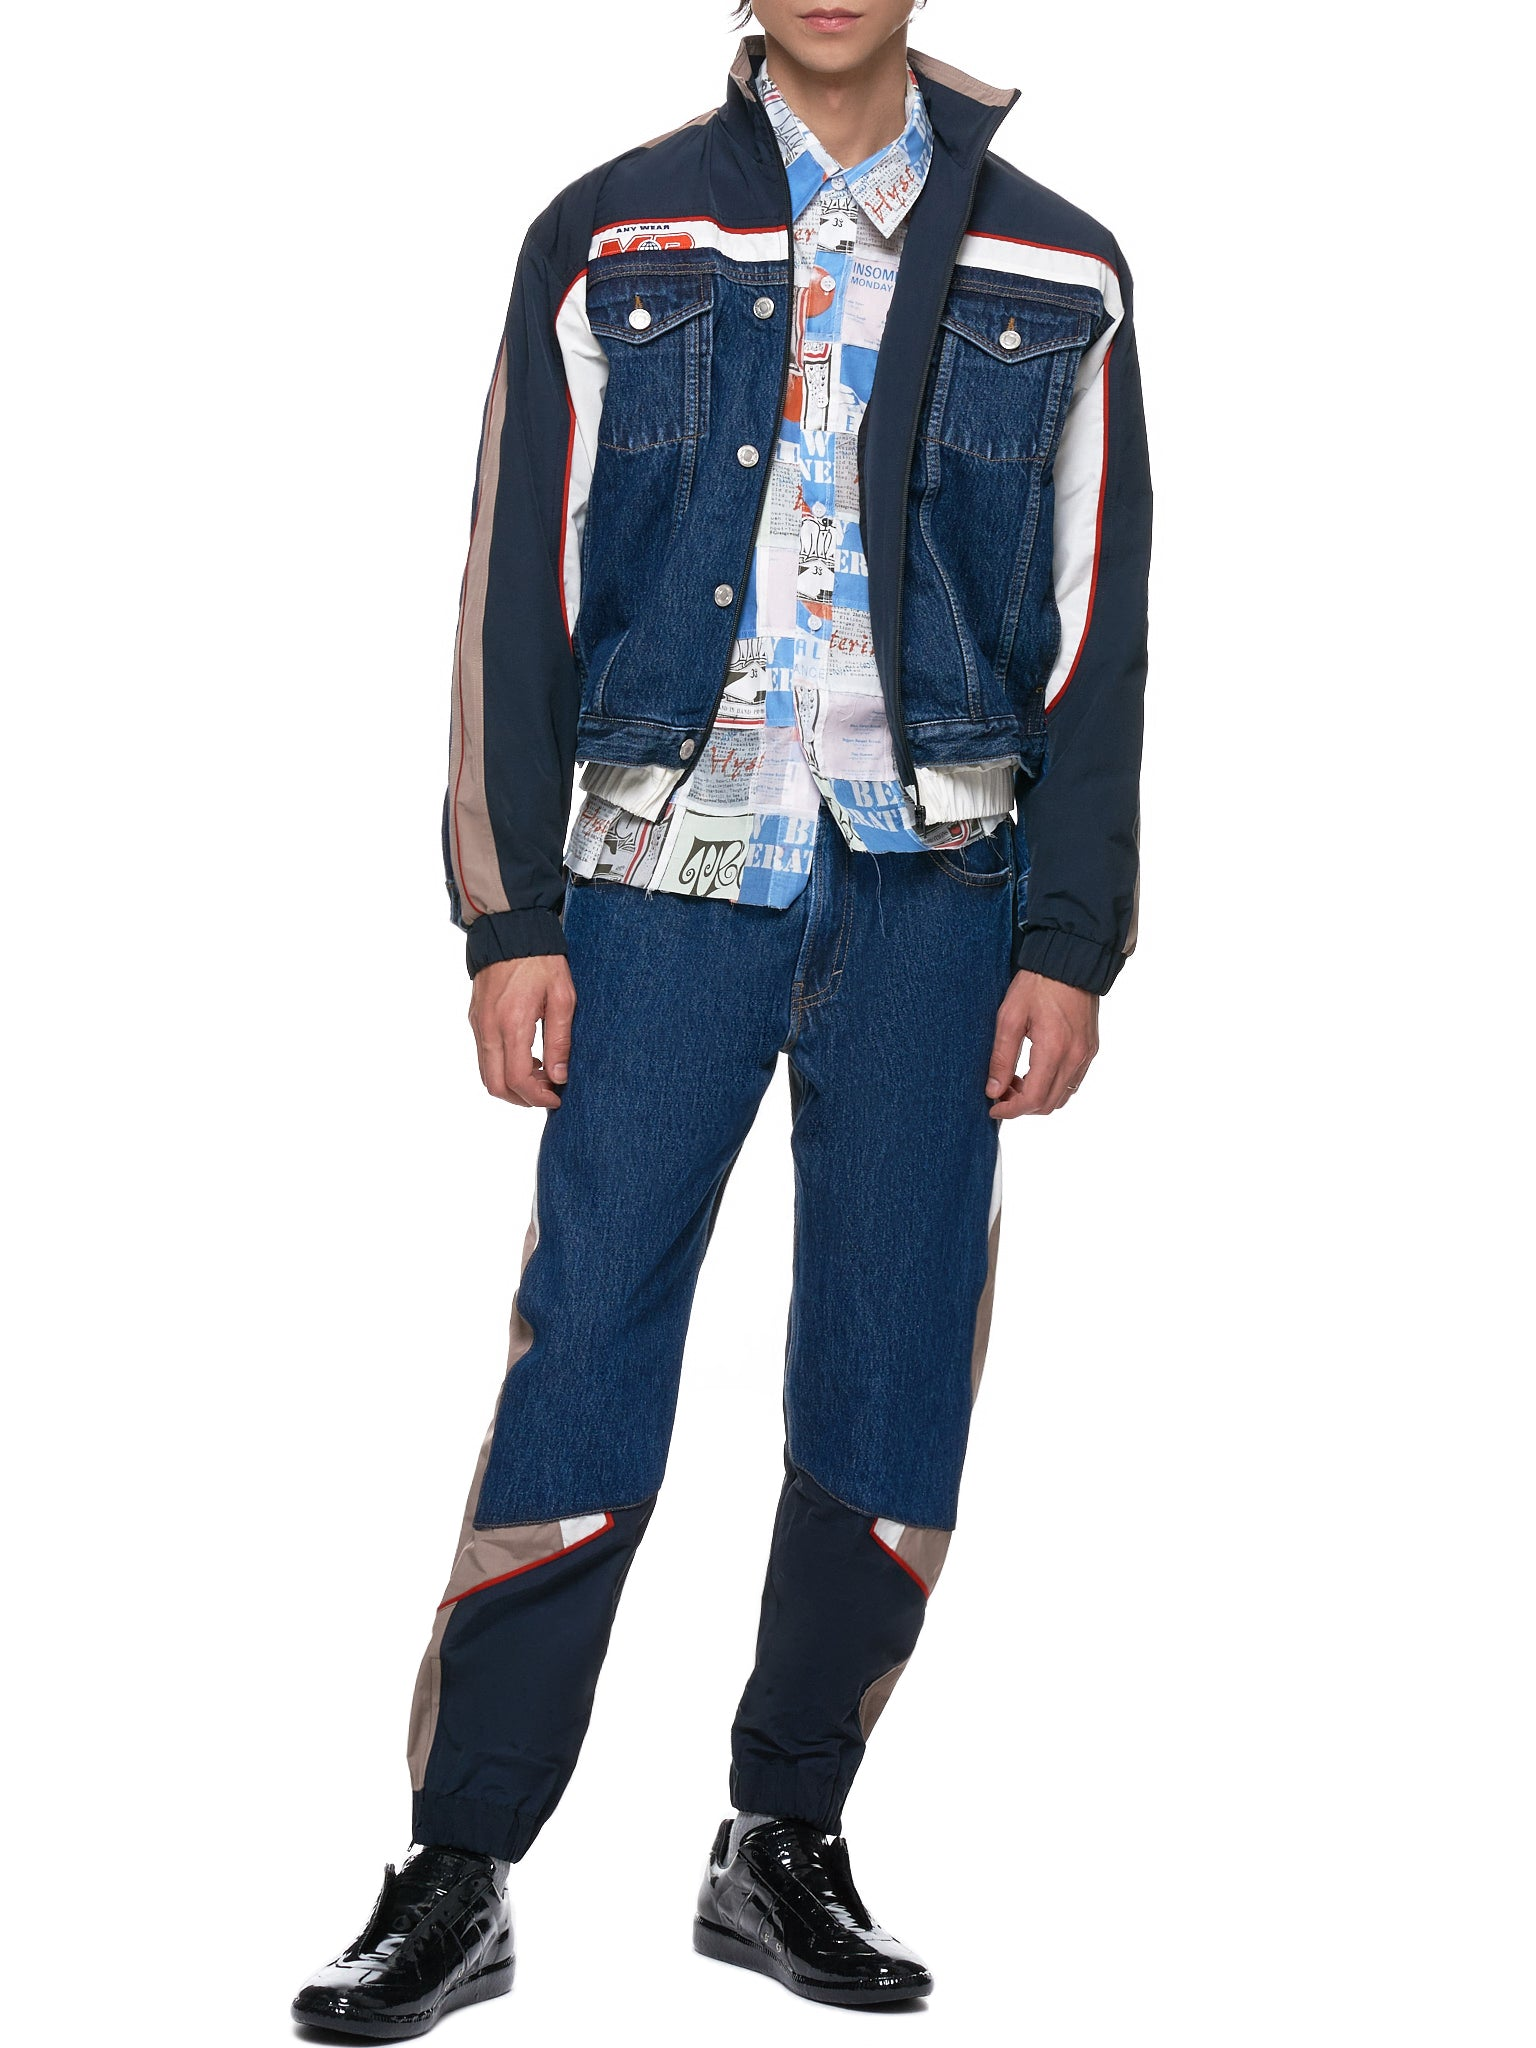 Martine Rose Denim Jacket - Hlorenzo Style